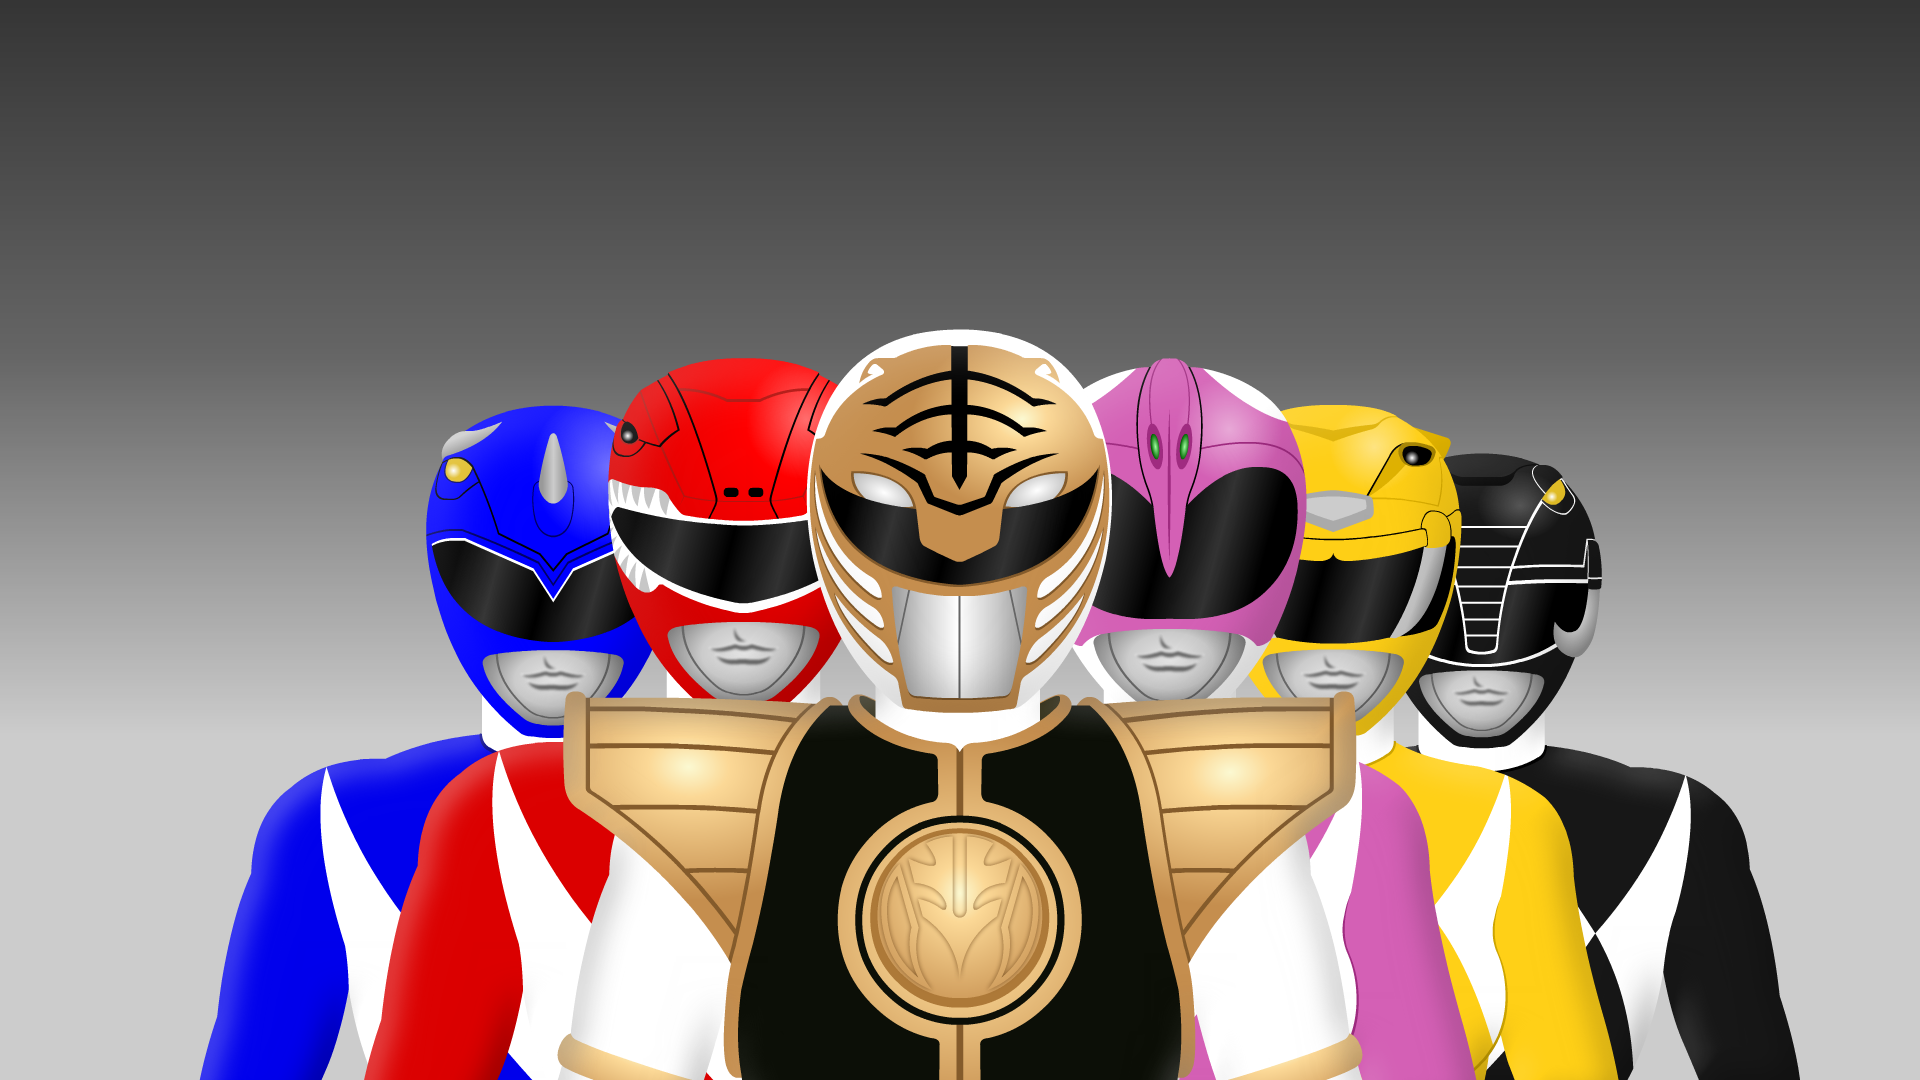 mighty morphin power rangersyurtigo on deviantart